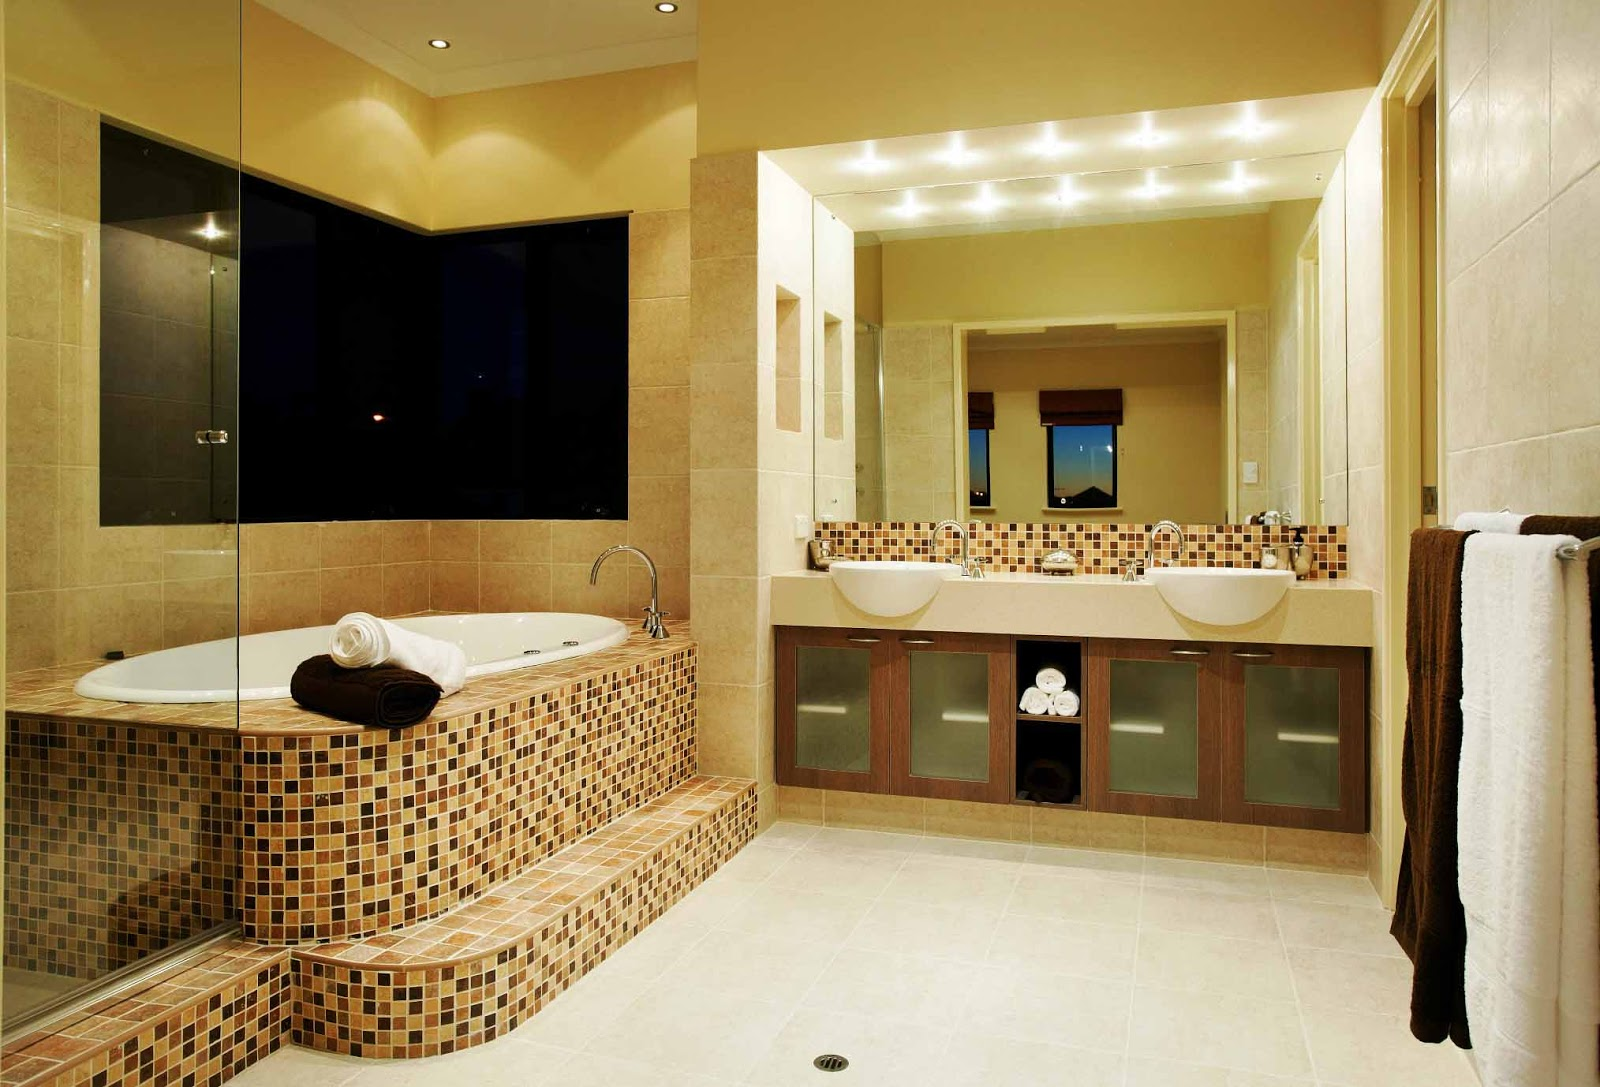 Bathroom Interior Design New Model Home Models Model Desain Interior